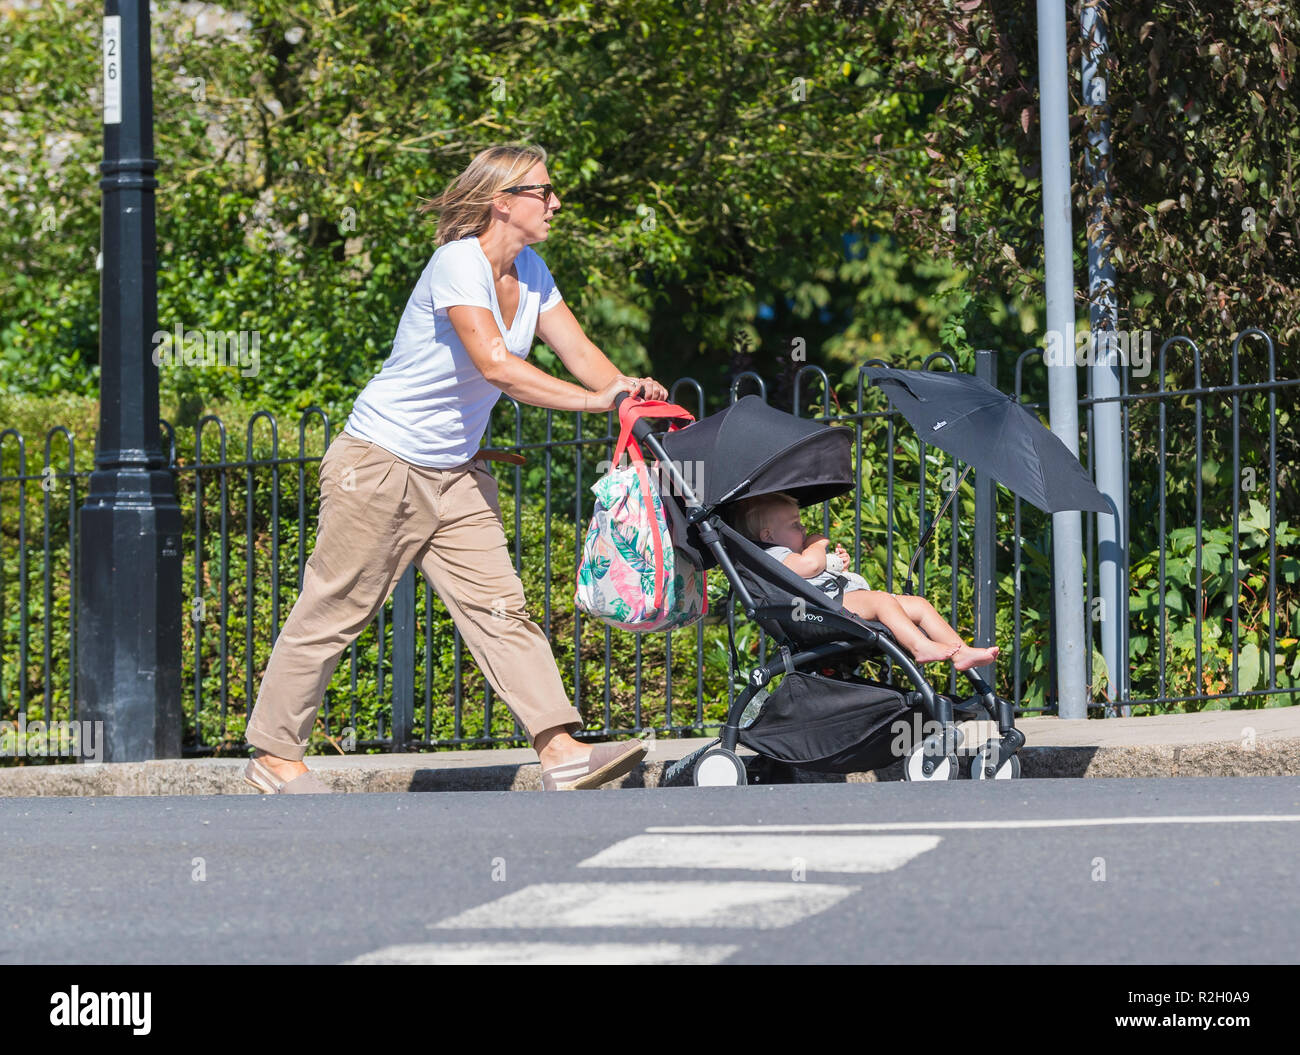 Woman in 30s or 40s pushing child in pushchair with sun protection umbrella to shade kid from sun, in Summer in the UK. - Stock Image